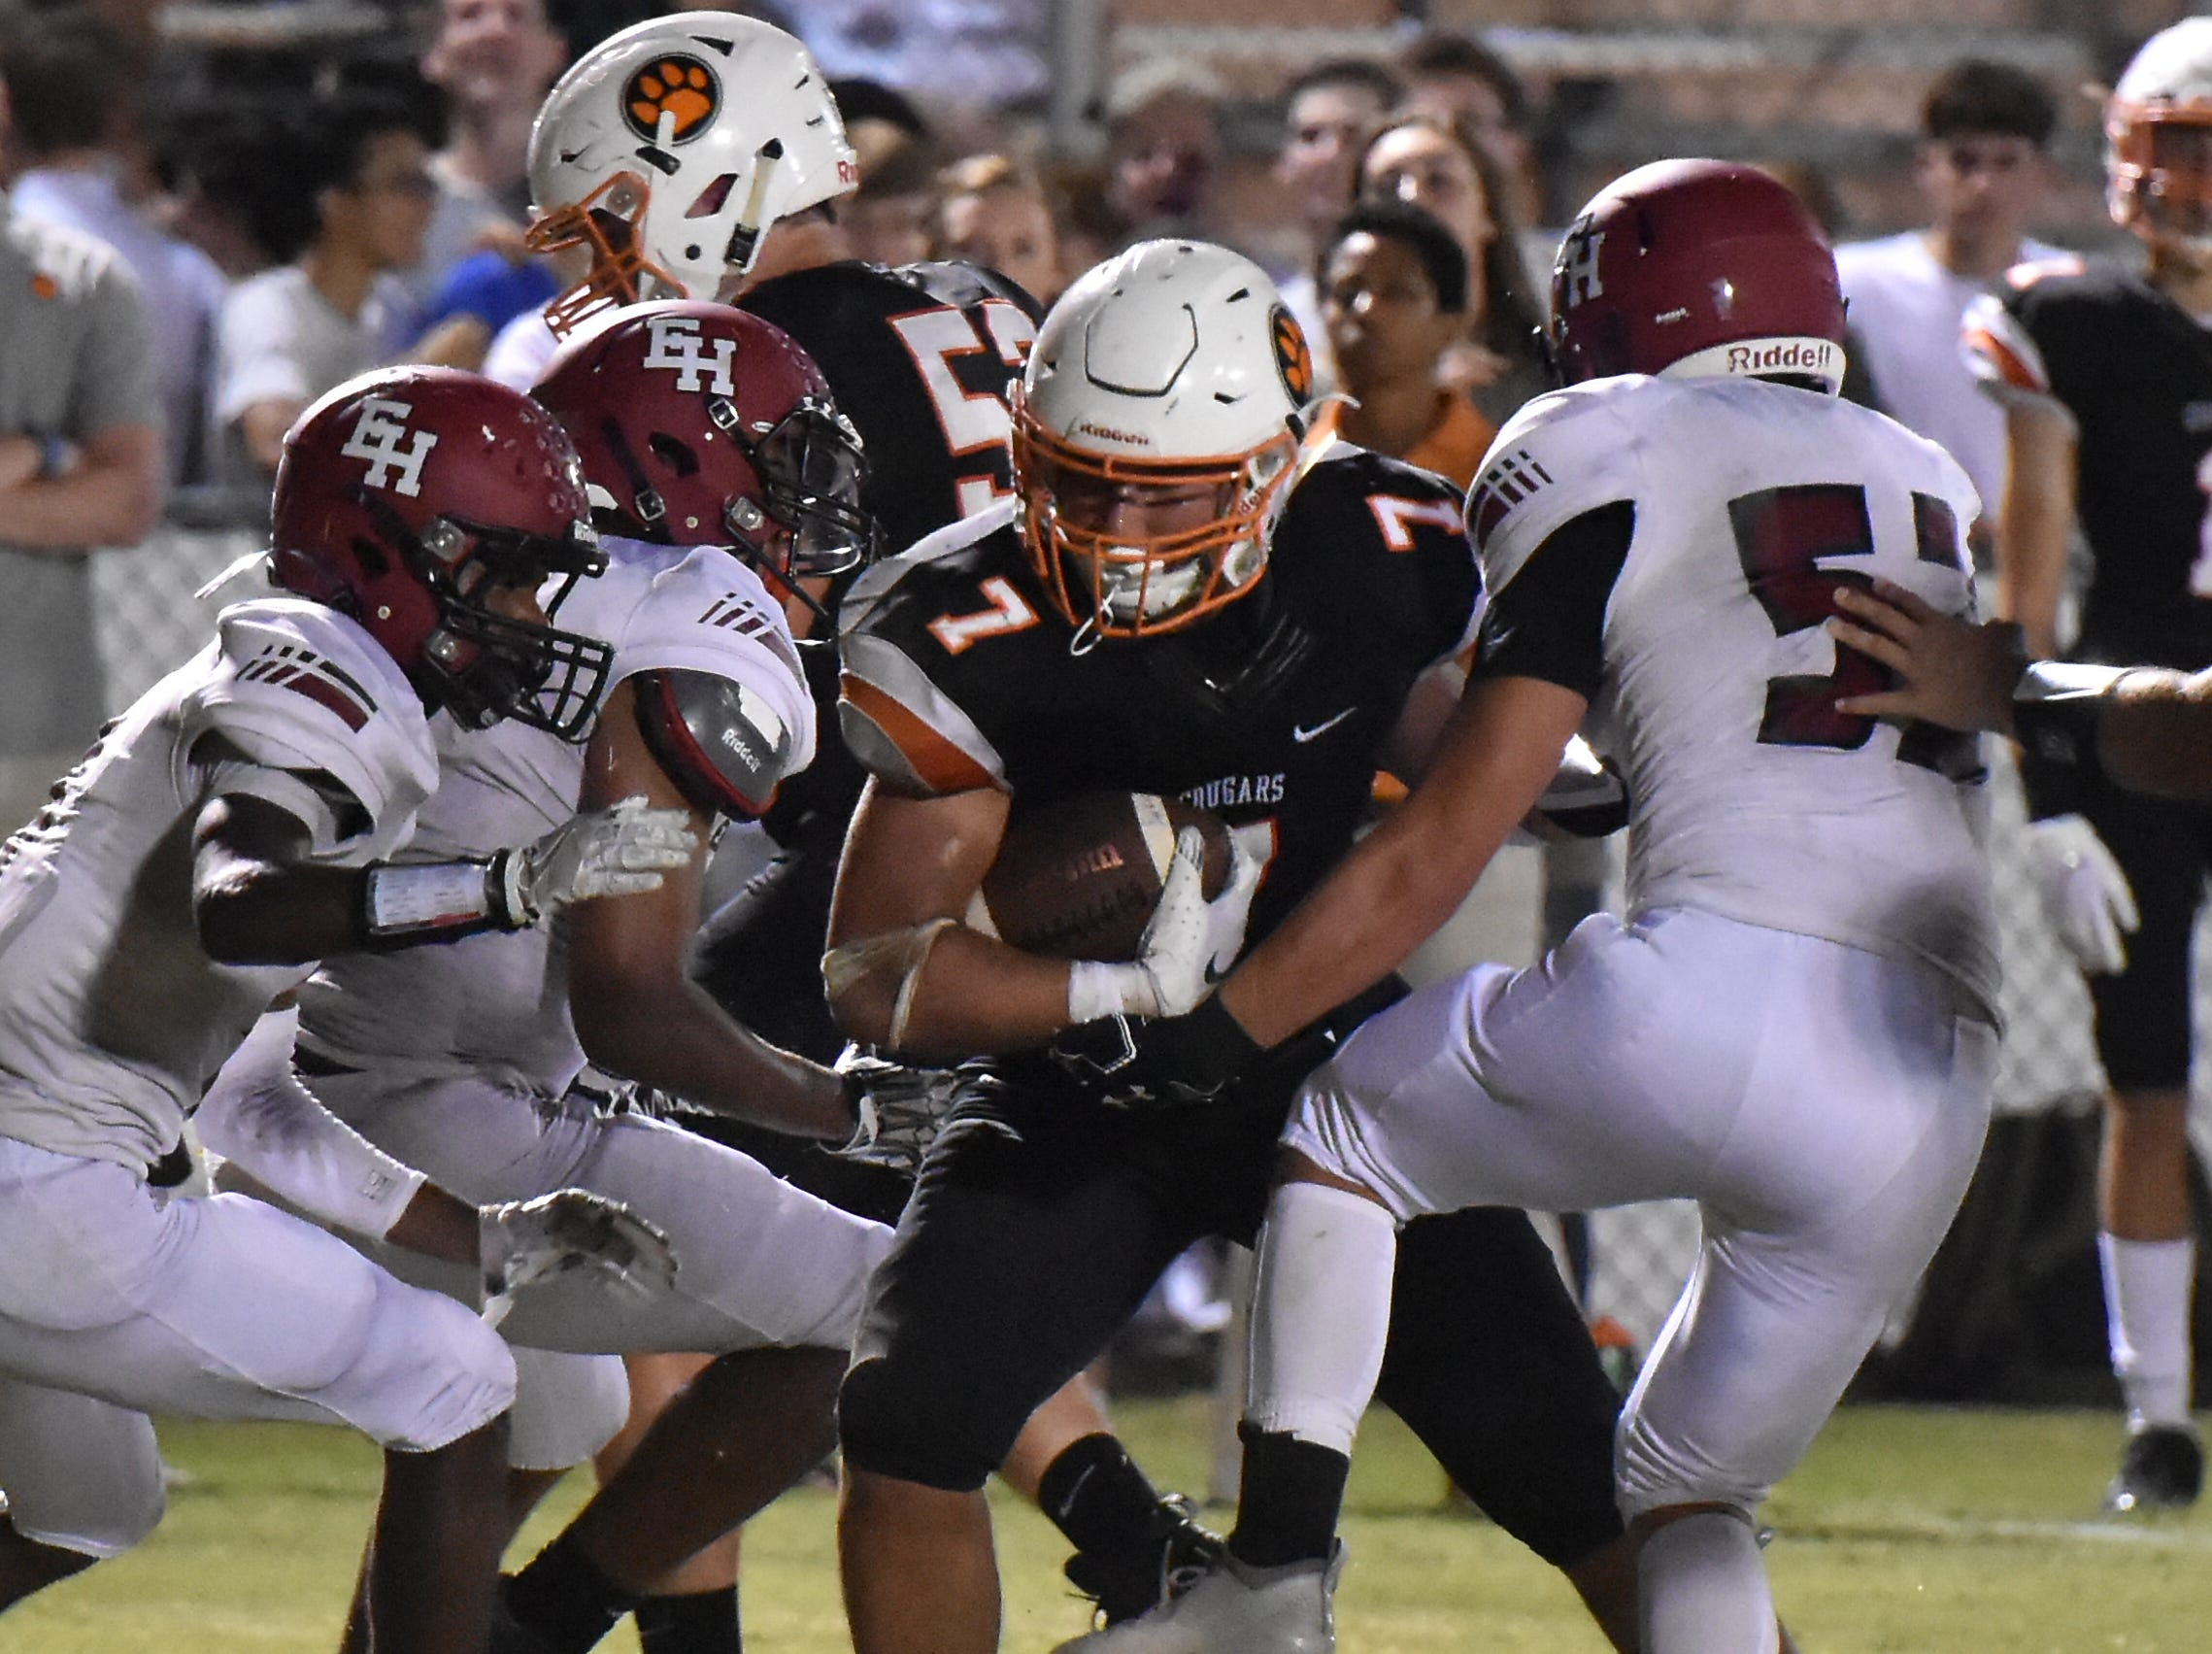 Drew Berry, grandson of NFL legend Raymond Berry, is tackled after a reception Friday night against Ezell-Harding.